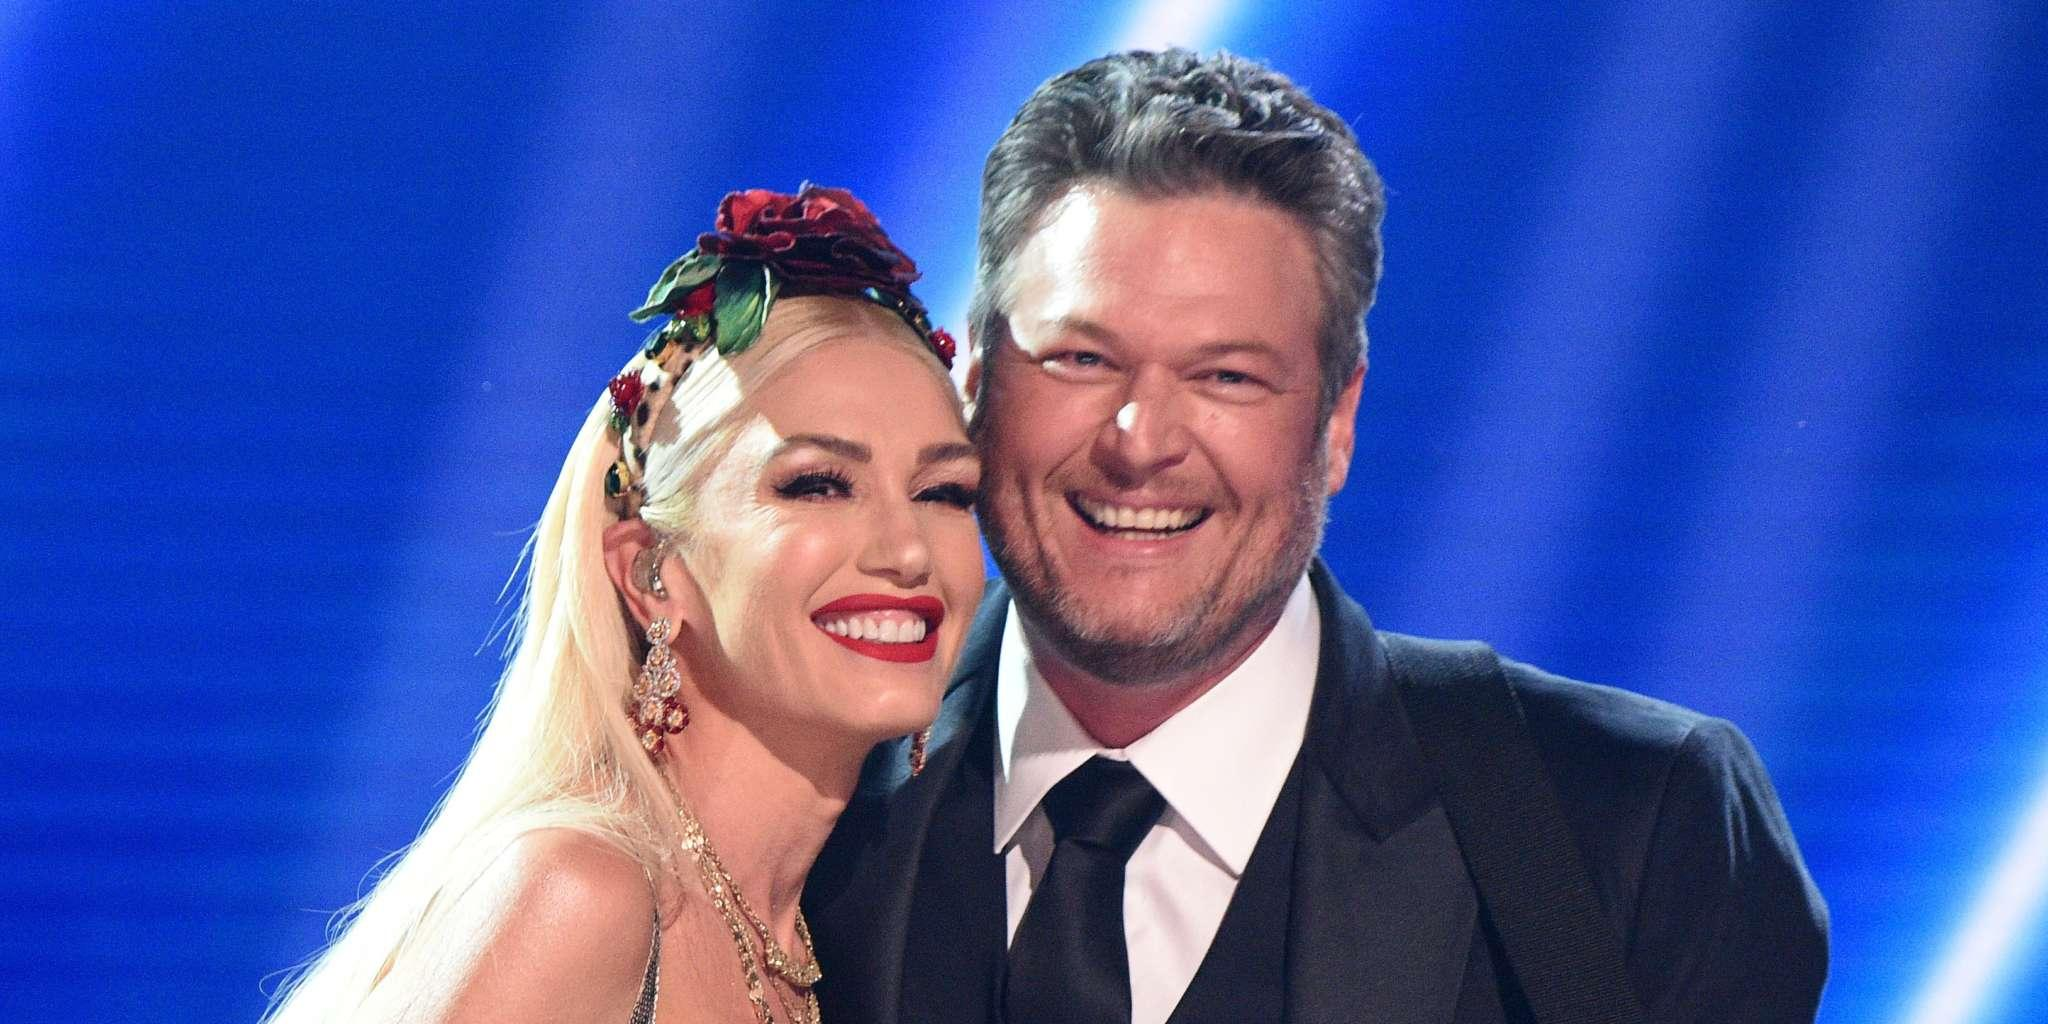 Gwen Stefani Sweetly Raves About Blake Shelton After Their Collab Song Tops Country Radio Chart!